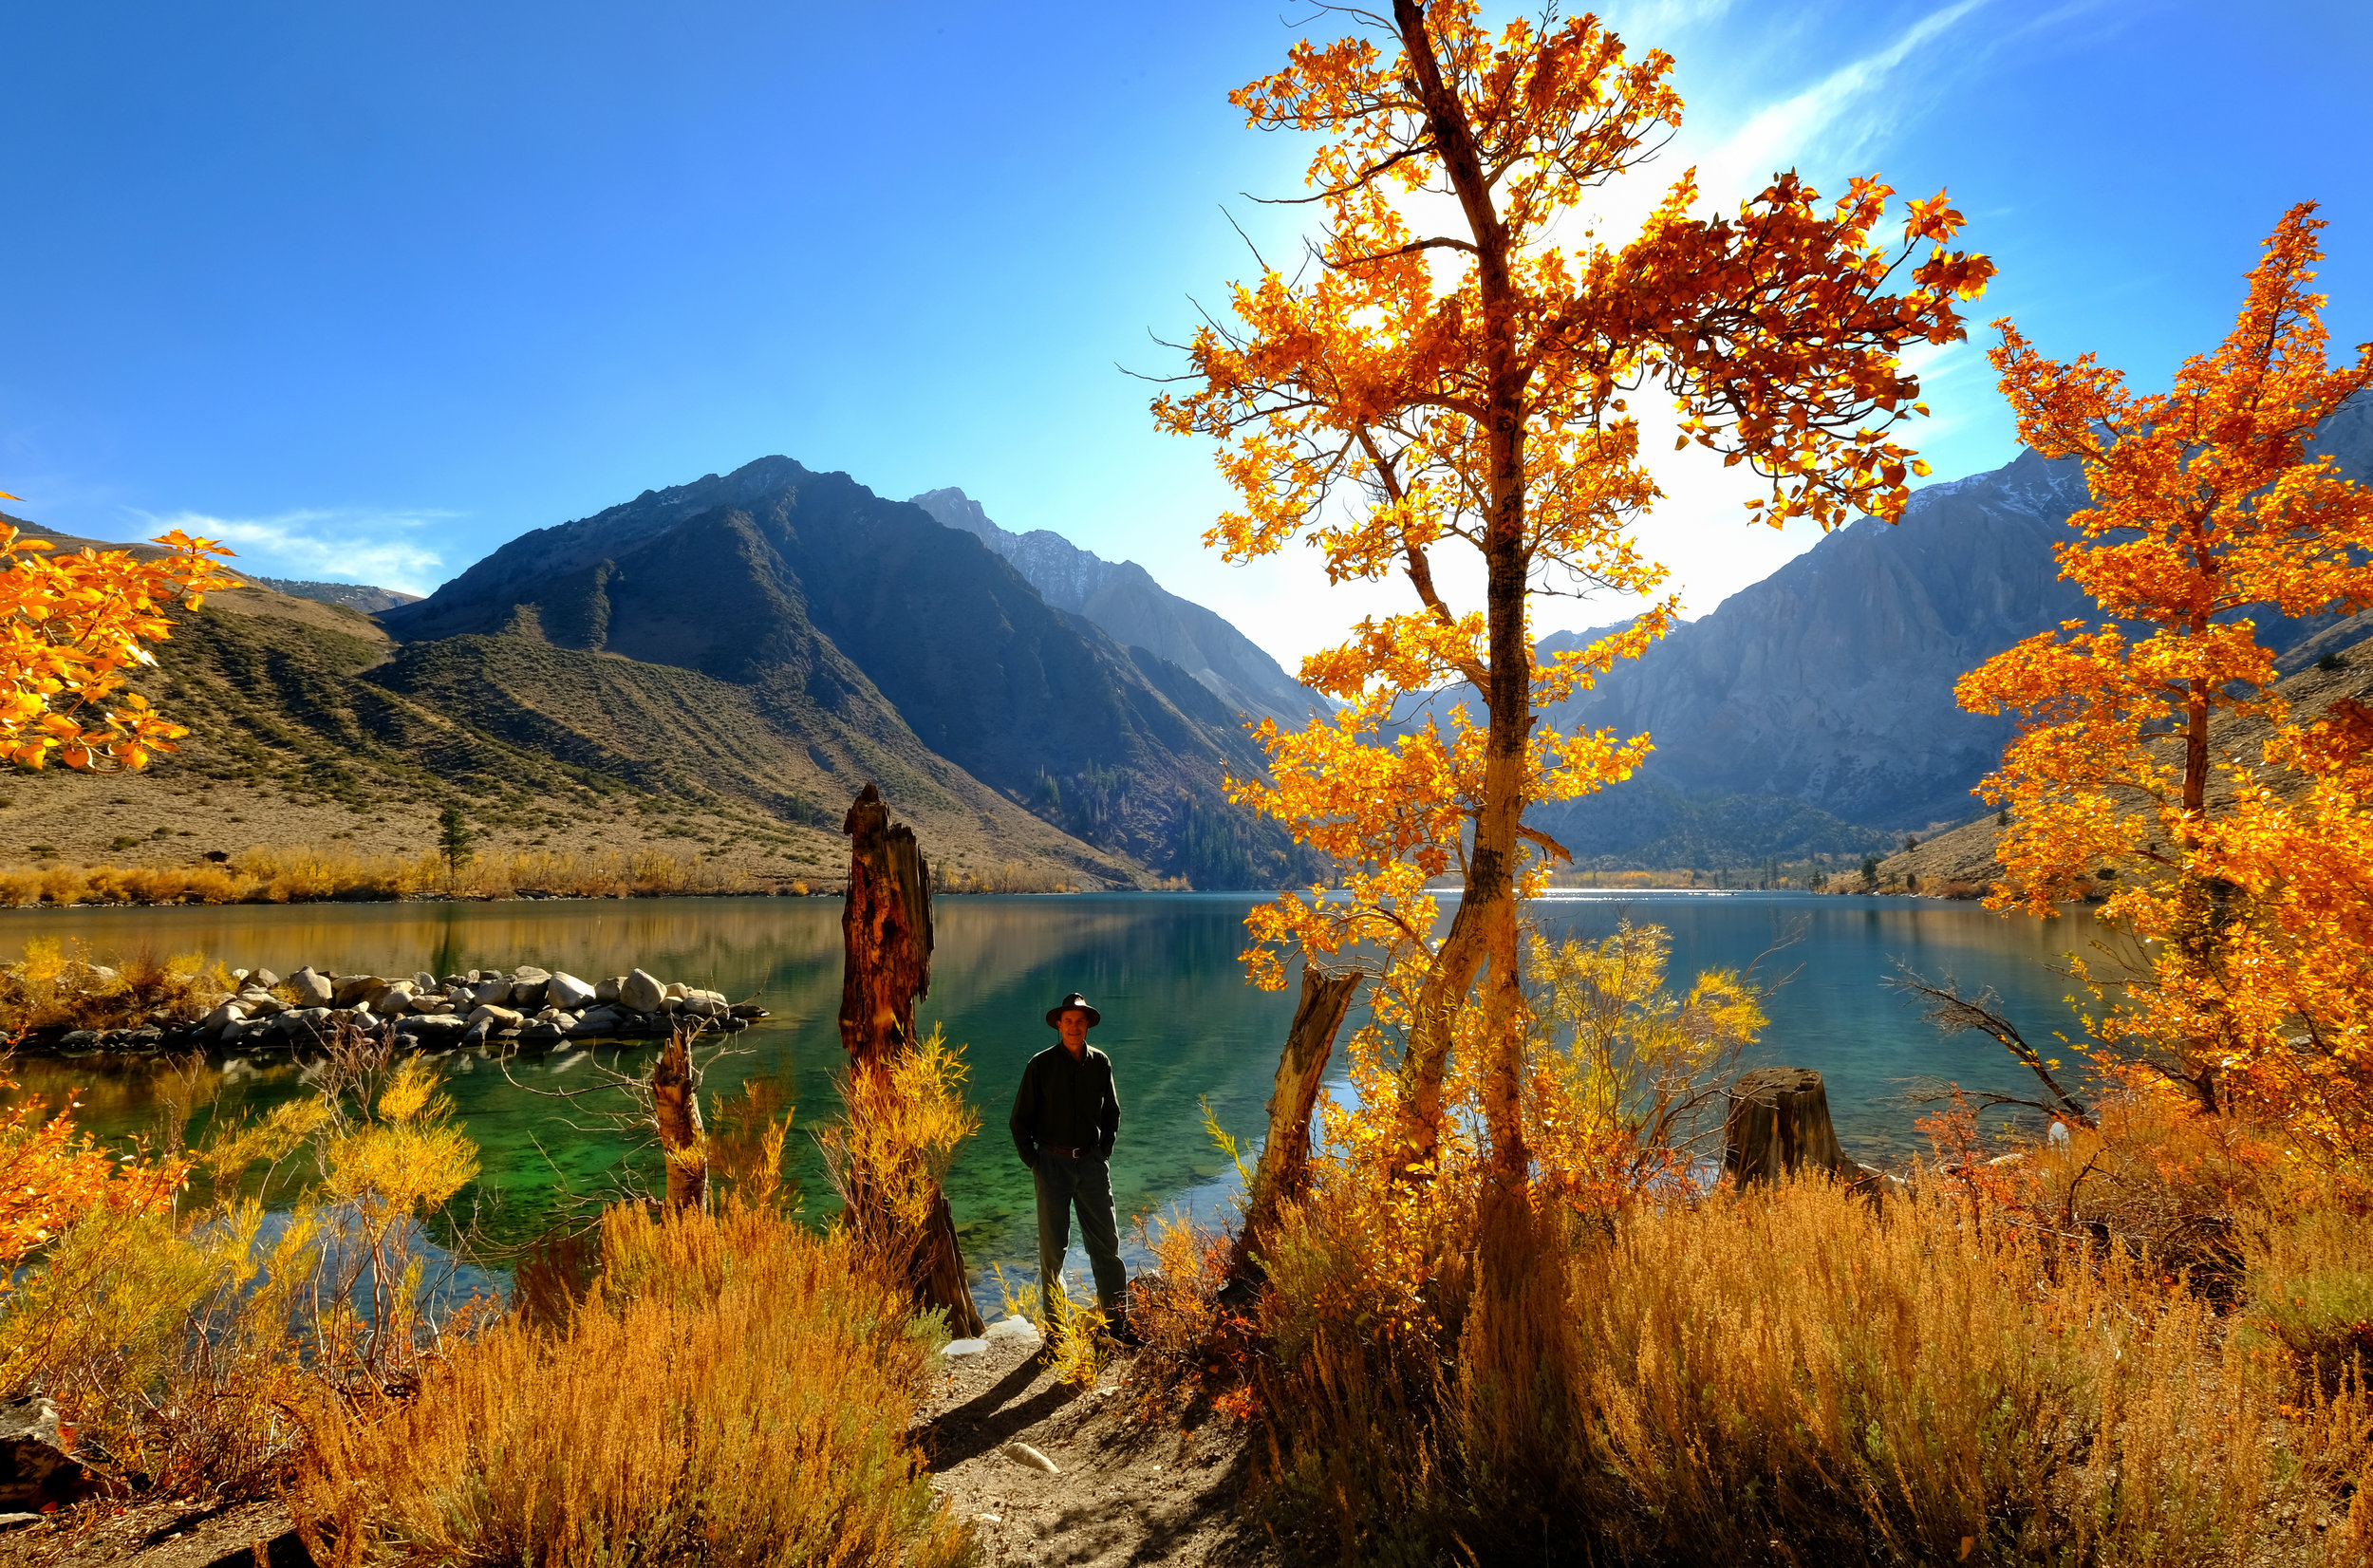 Photographing at Convict Lake in the Eastern Sierra